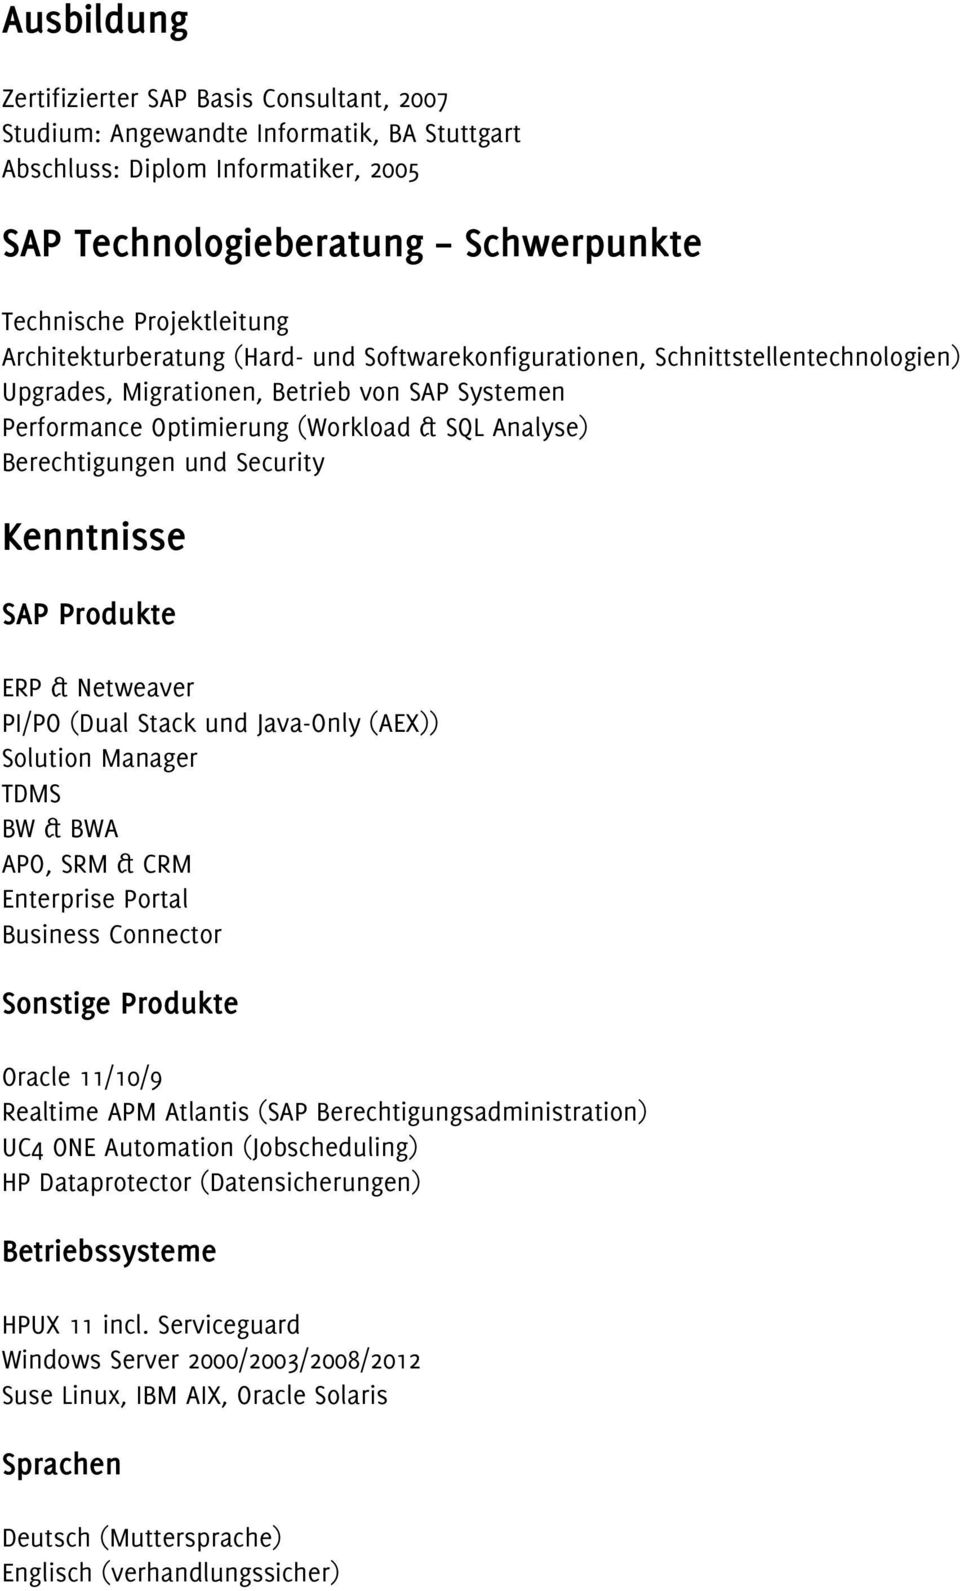 Security Kenntnisse SAP Produkte ERP & Netweaver PI/PO (Dual Stack und Java-Only (AEX)) Solution Manager TDMS BW & BWA APO, SRM & CRM Enterprise Portal Business Connector Sonstige Produkte Oracle